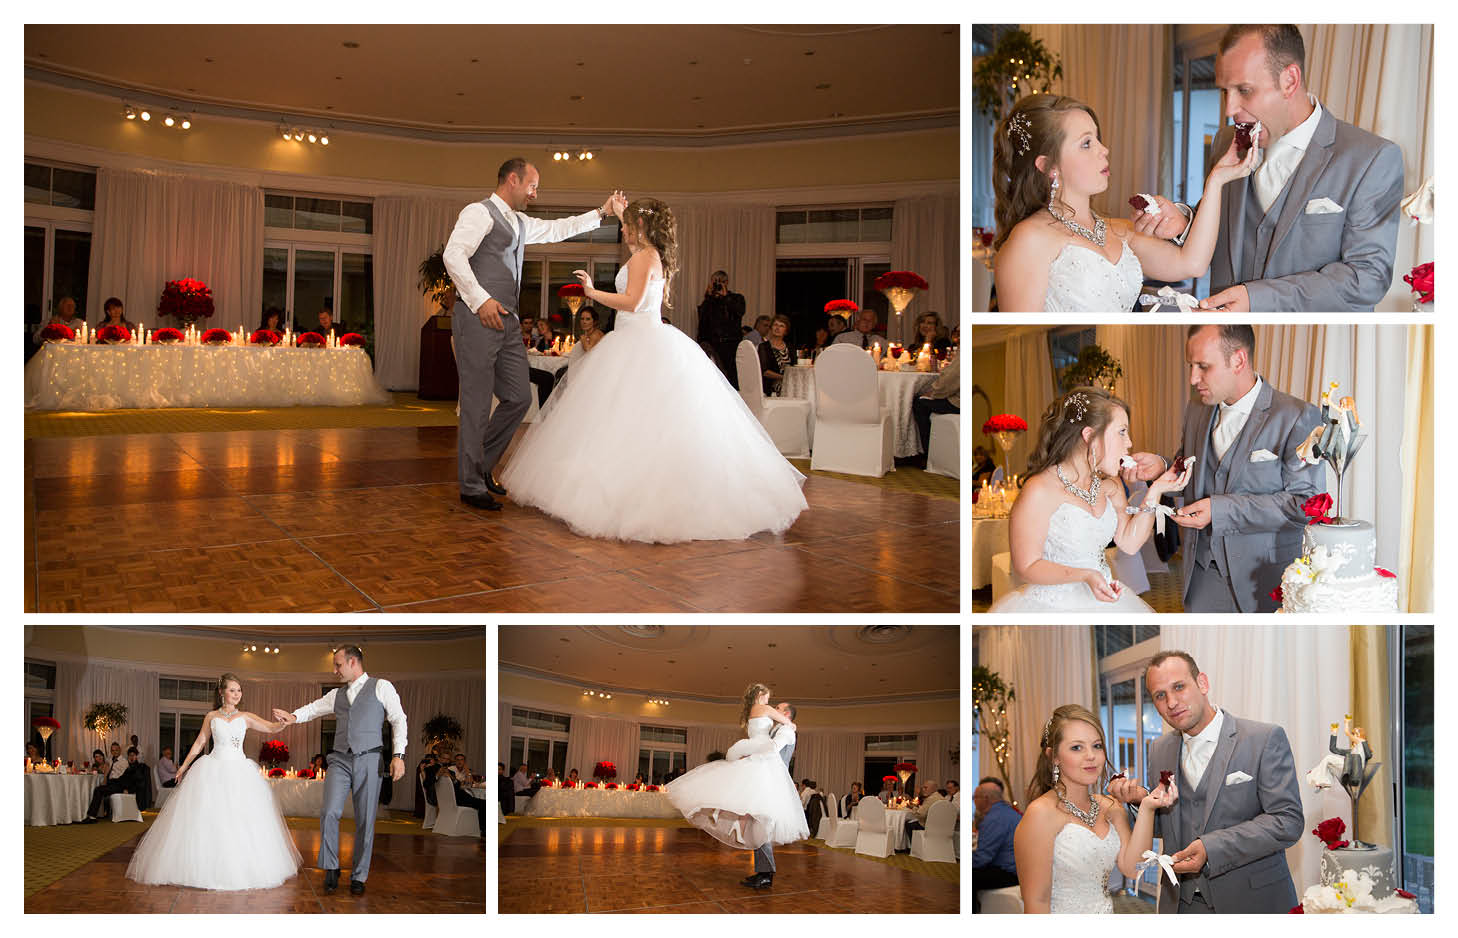 bride and groom first dance and cake cutting at the country club johannesburg